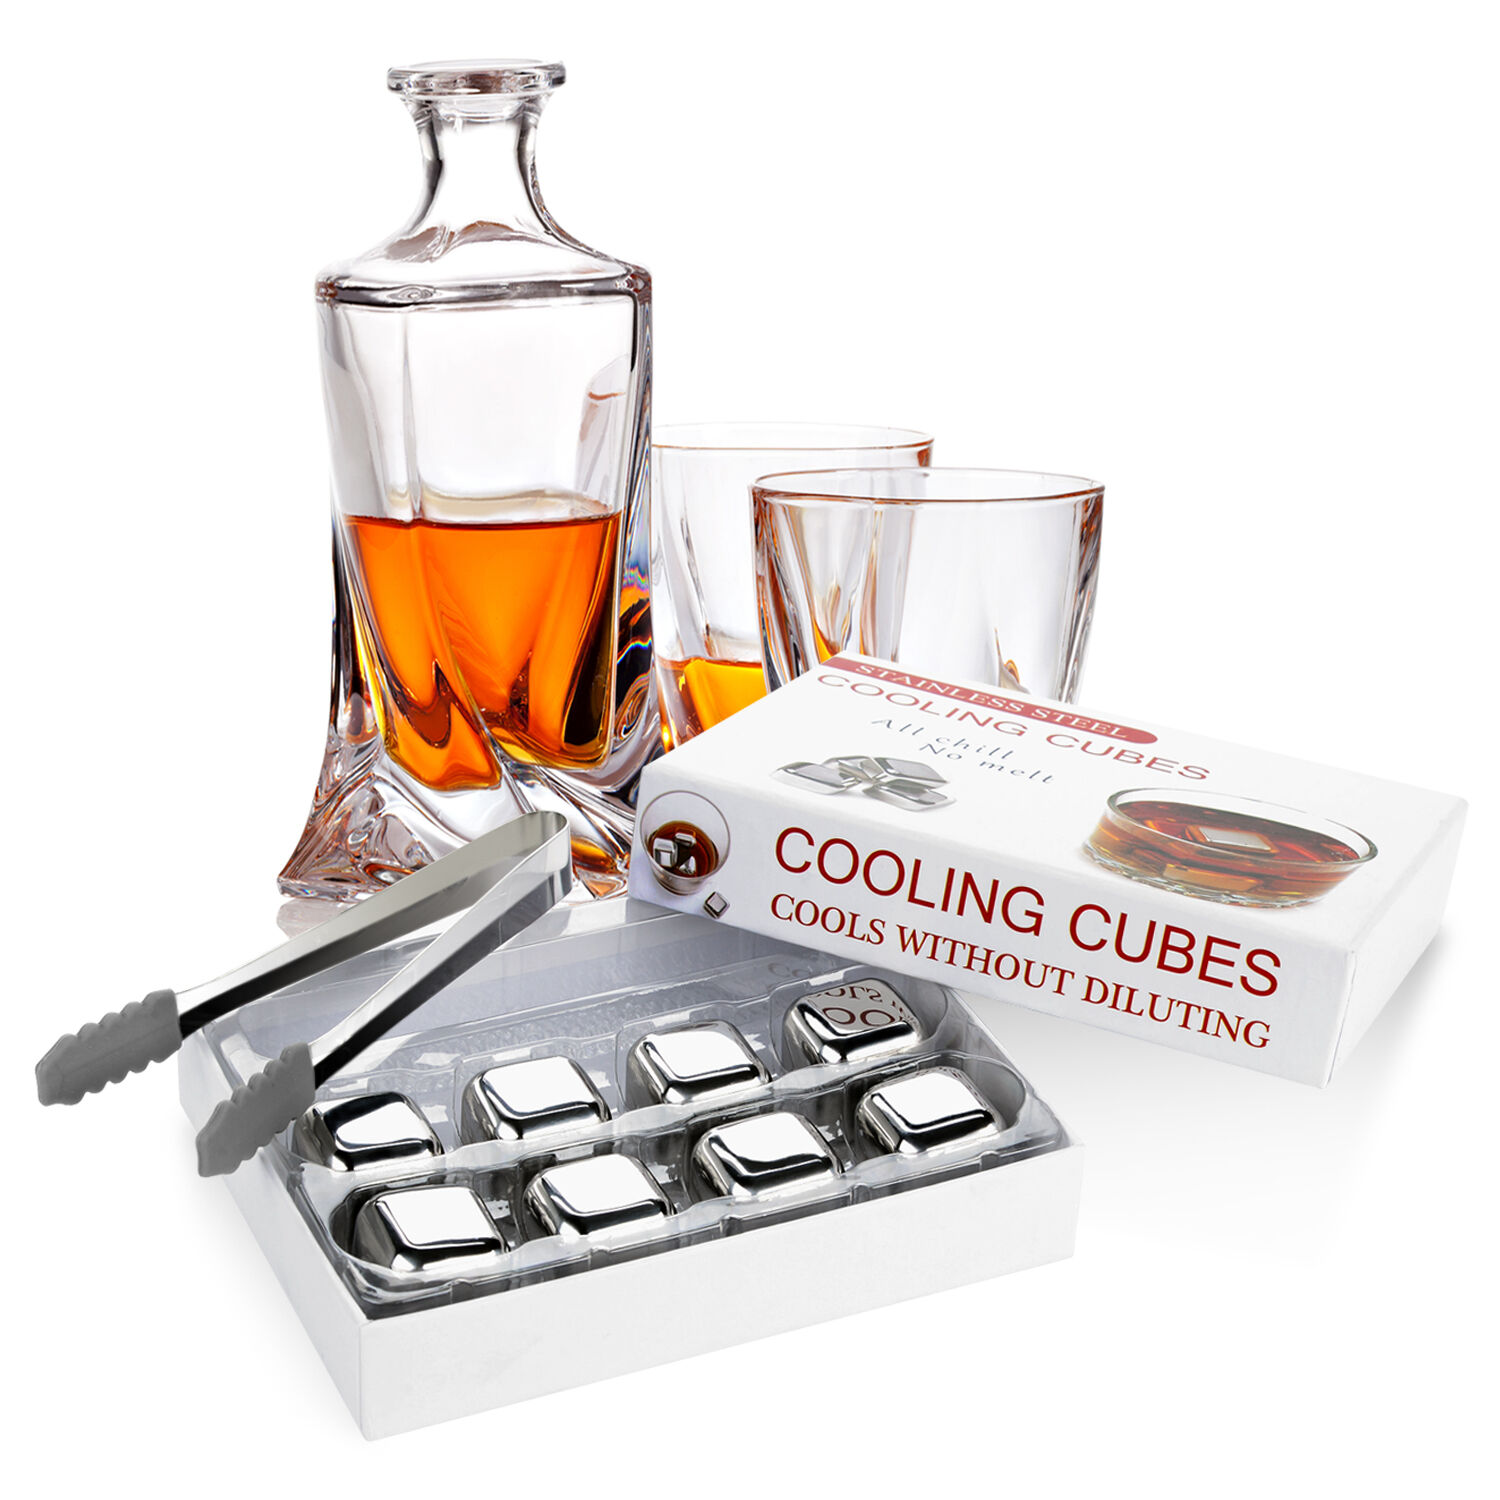 8x Edelstahl Cubes Stainless Ice Cubes Eiswürfel Mixgetränke Getränk ...